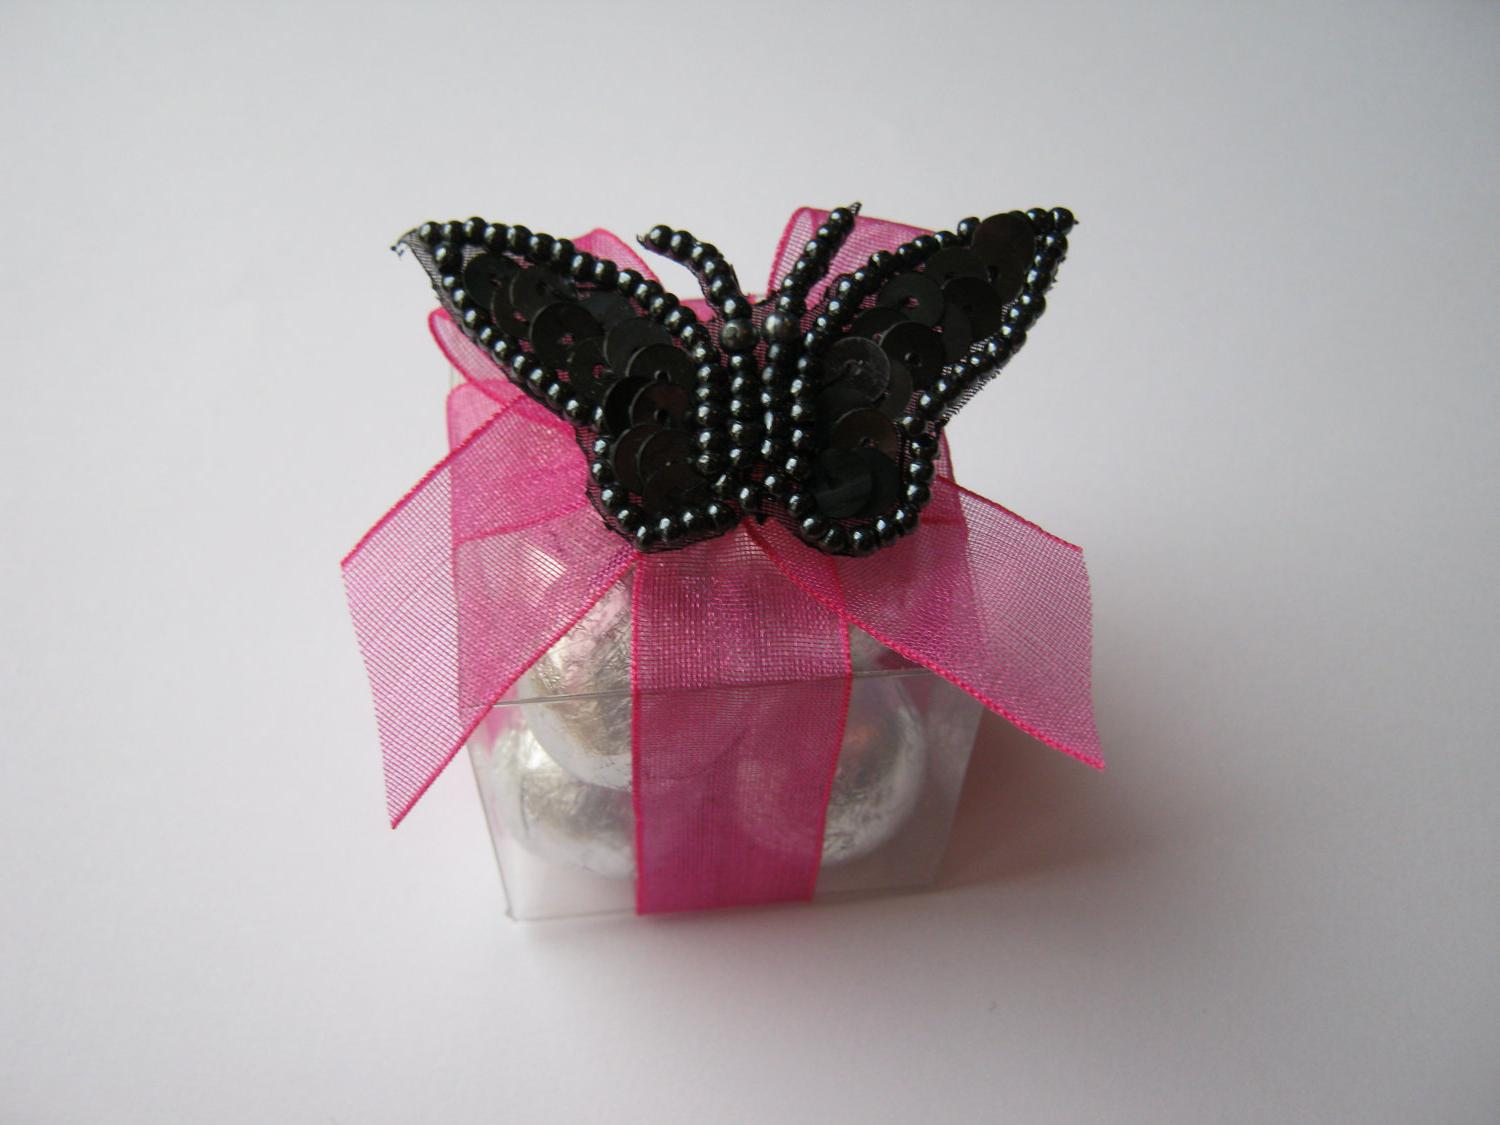 Hot PInk & Black Favors